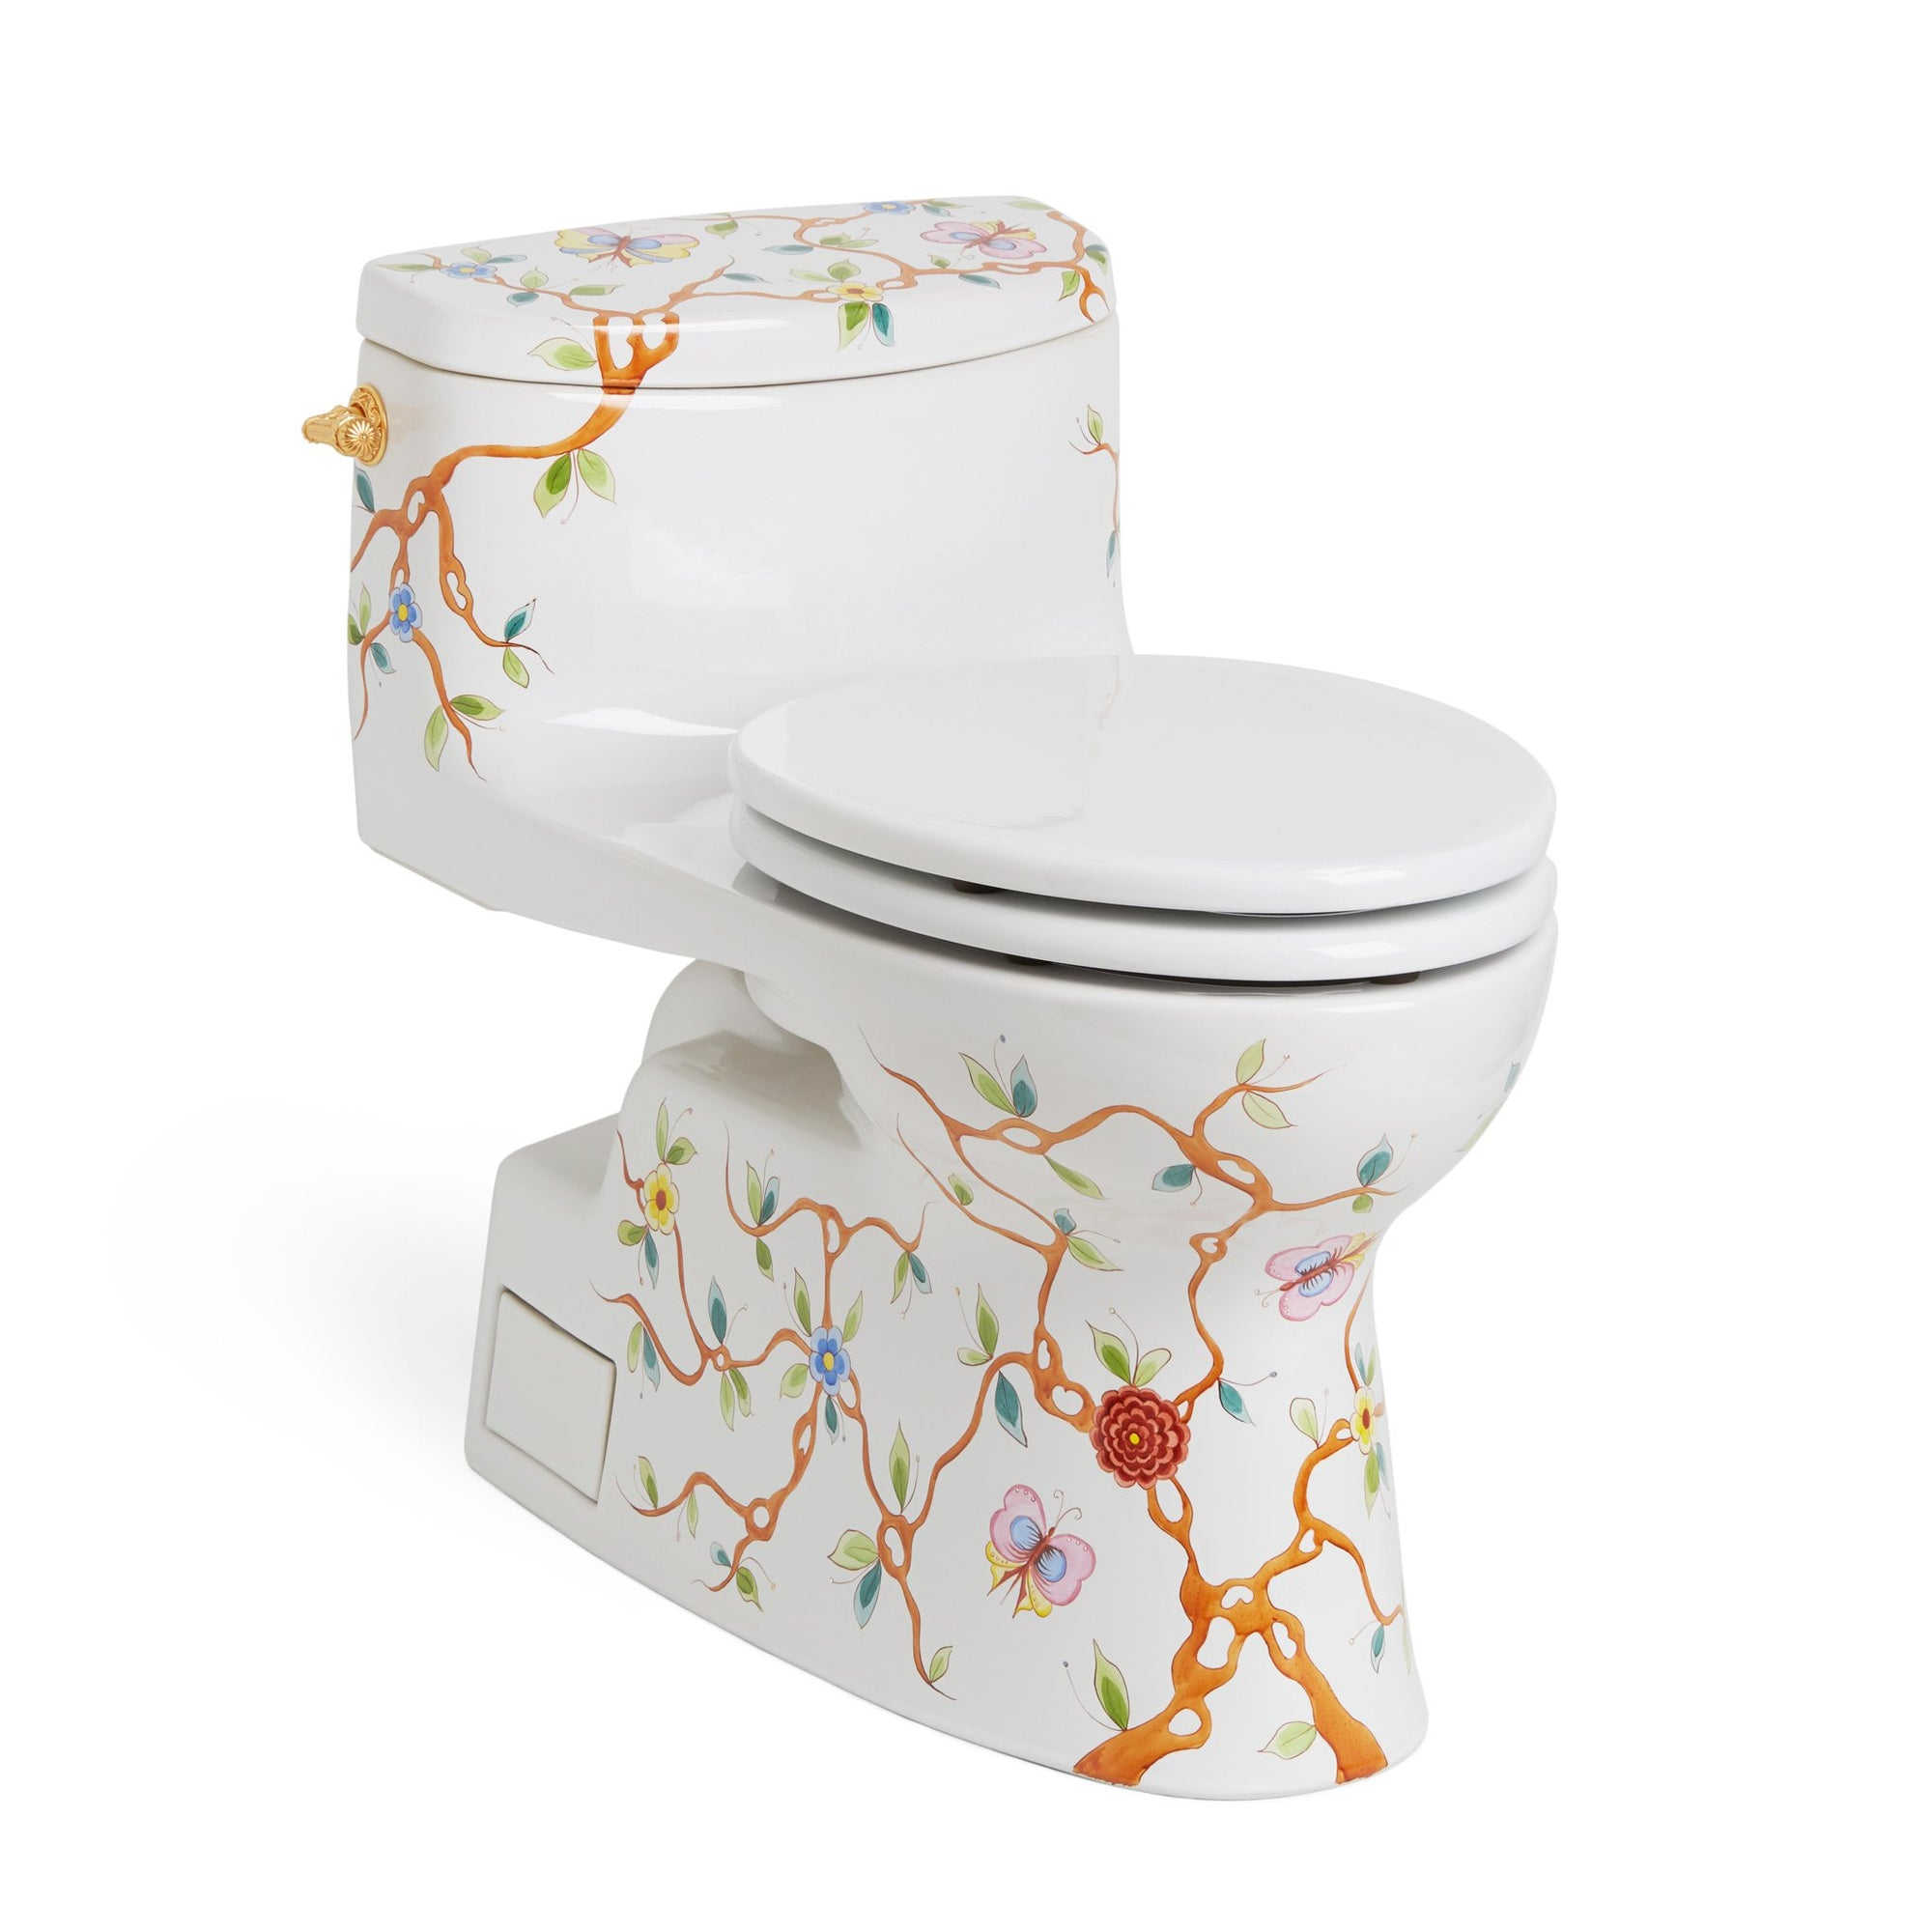 0234EL-51SG-WH Sherle Wagner International Summer Garden on White Ceramic Toilet